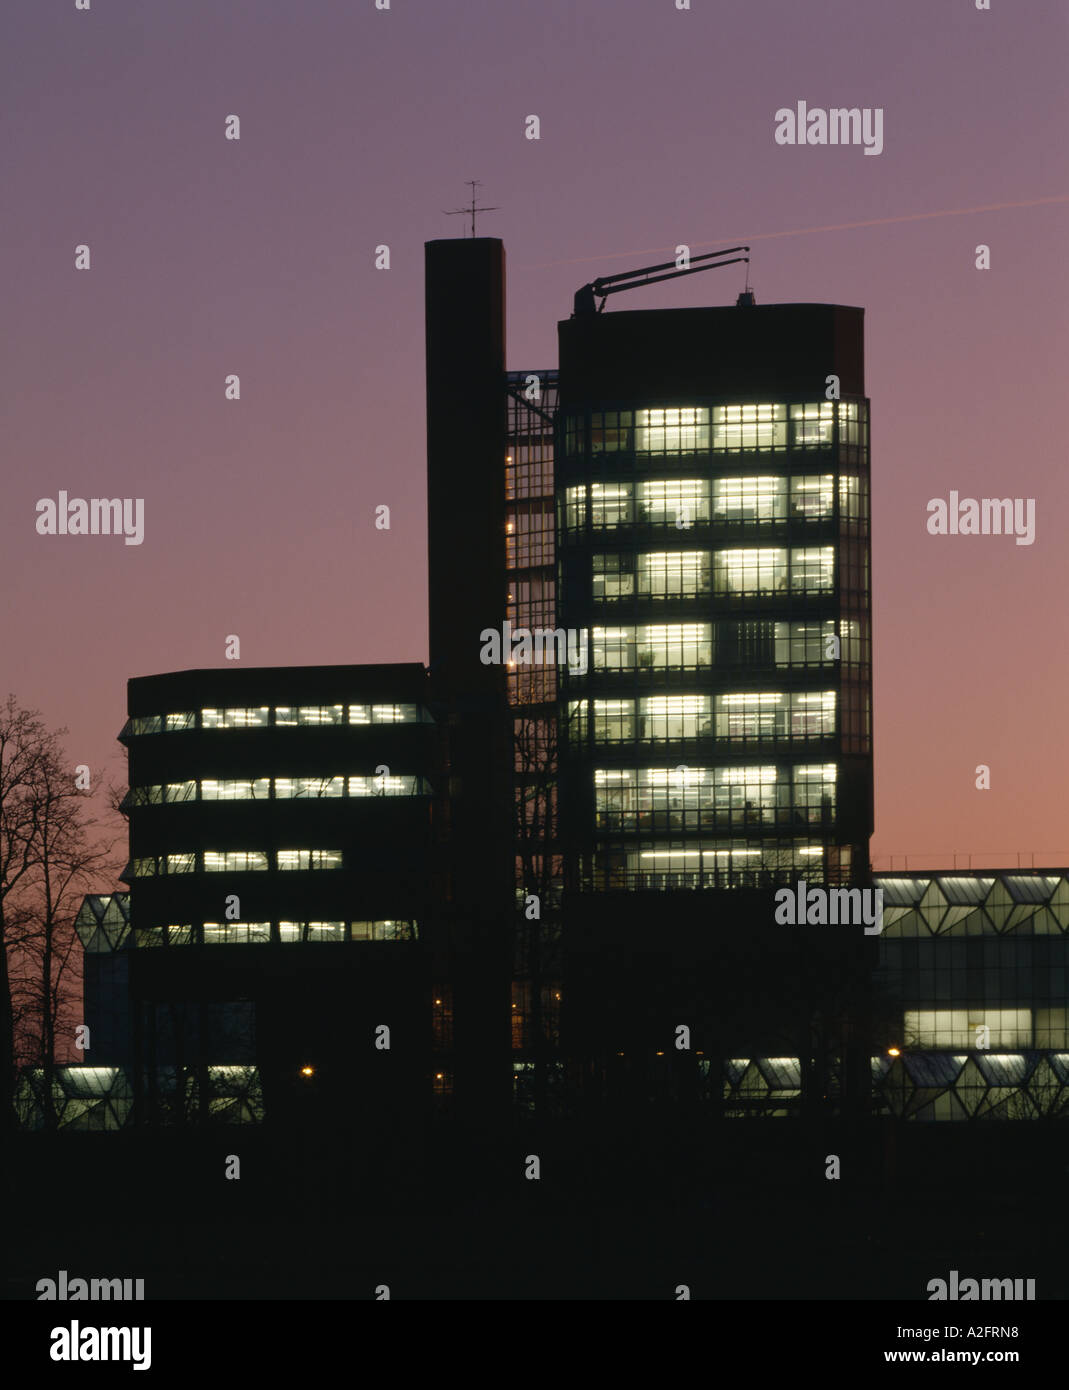 Leicester University Faculty of Engineering, England, 1959 - 1963. Office and Laboratory Tower illuminated at night. Stock Photo